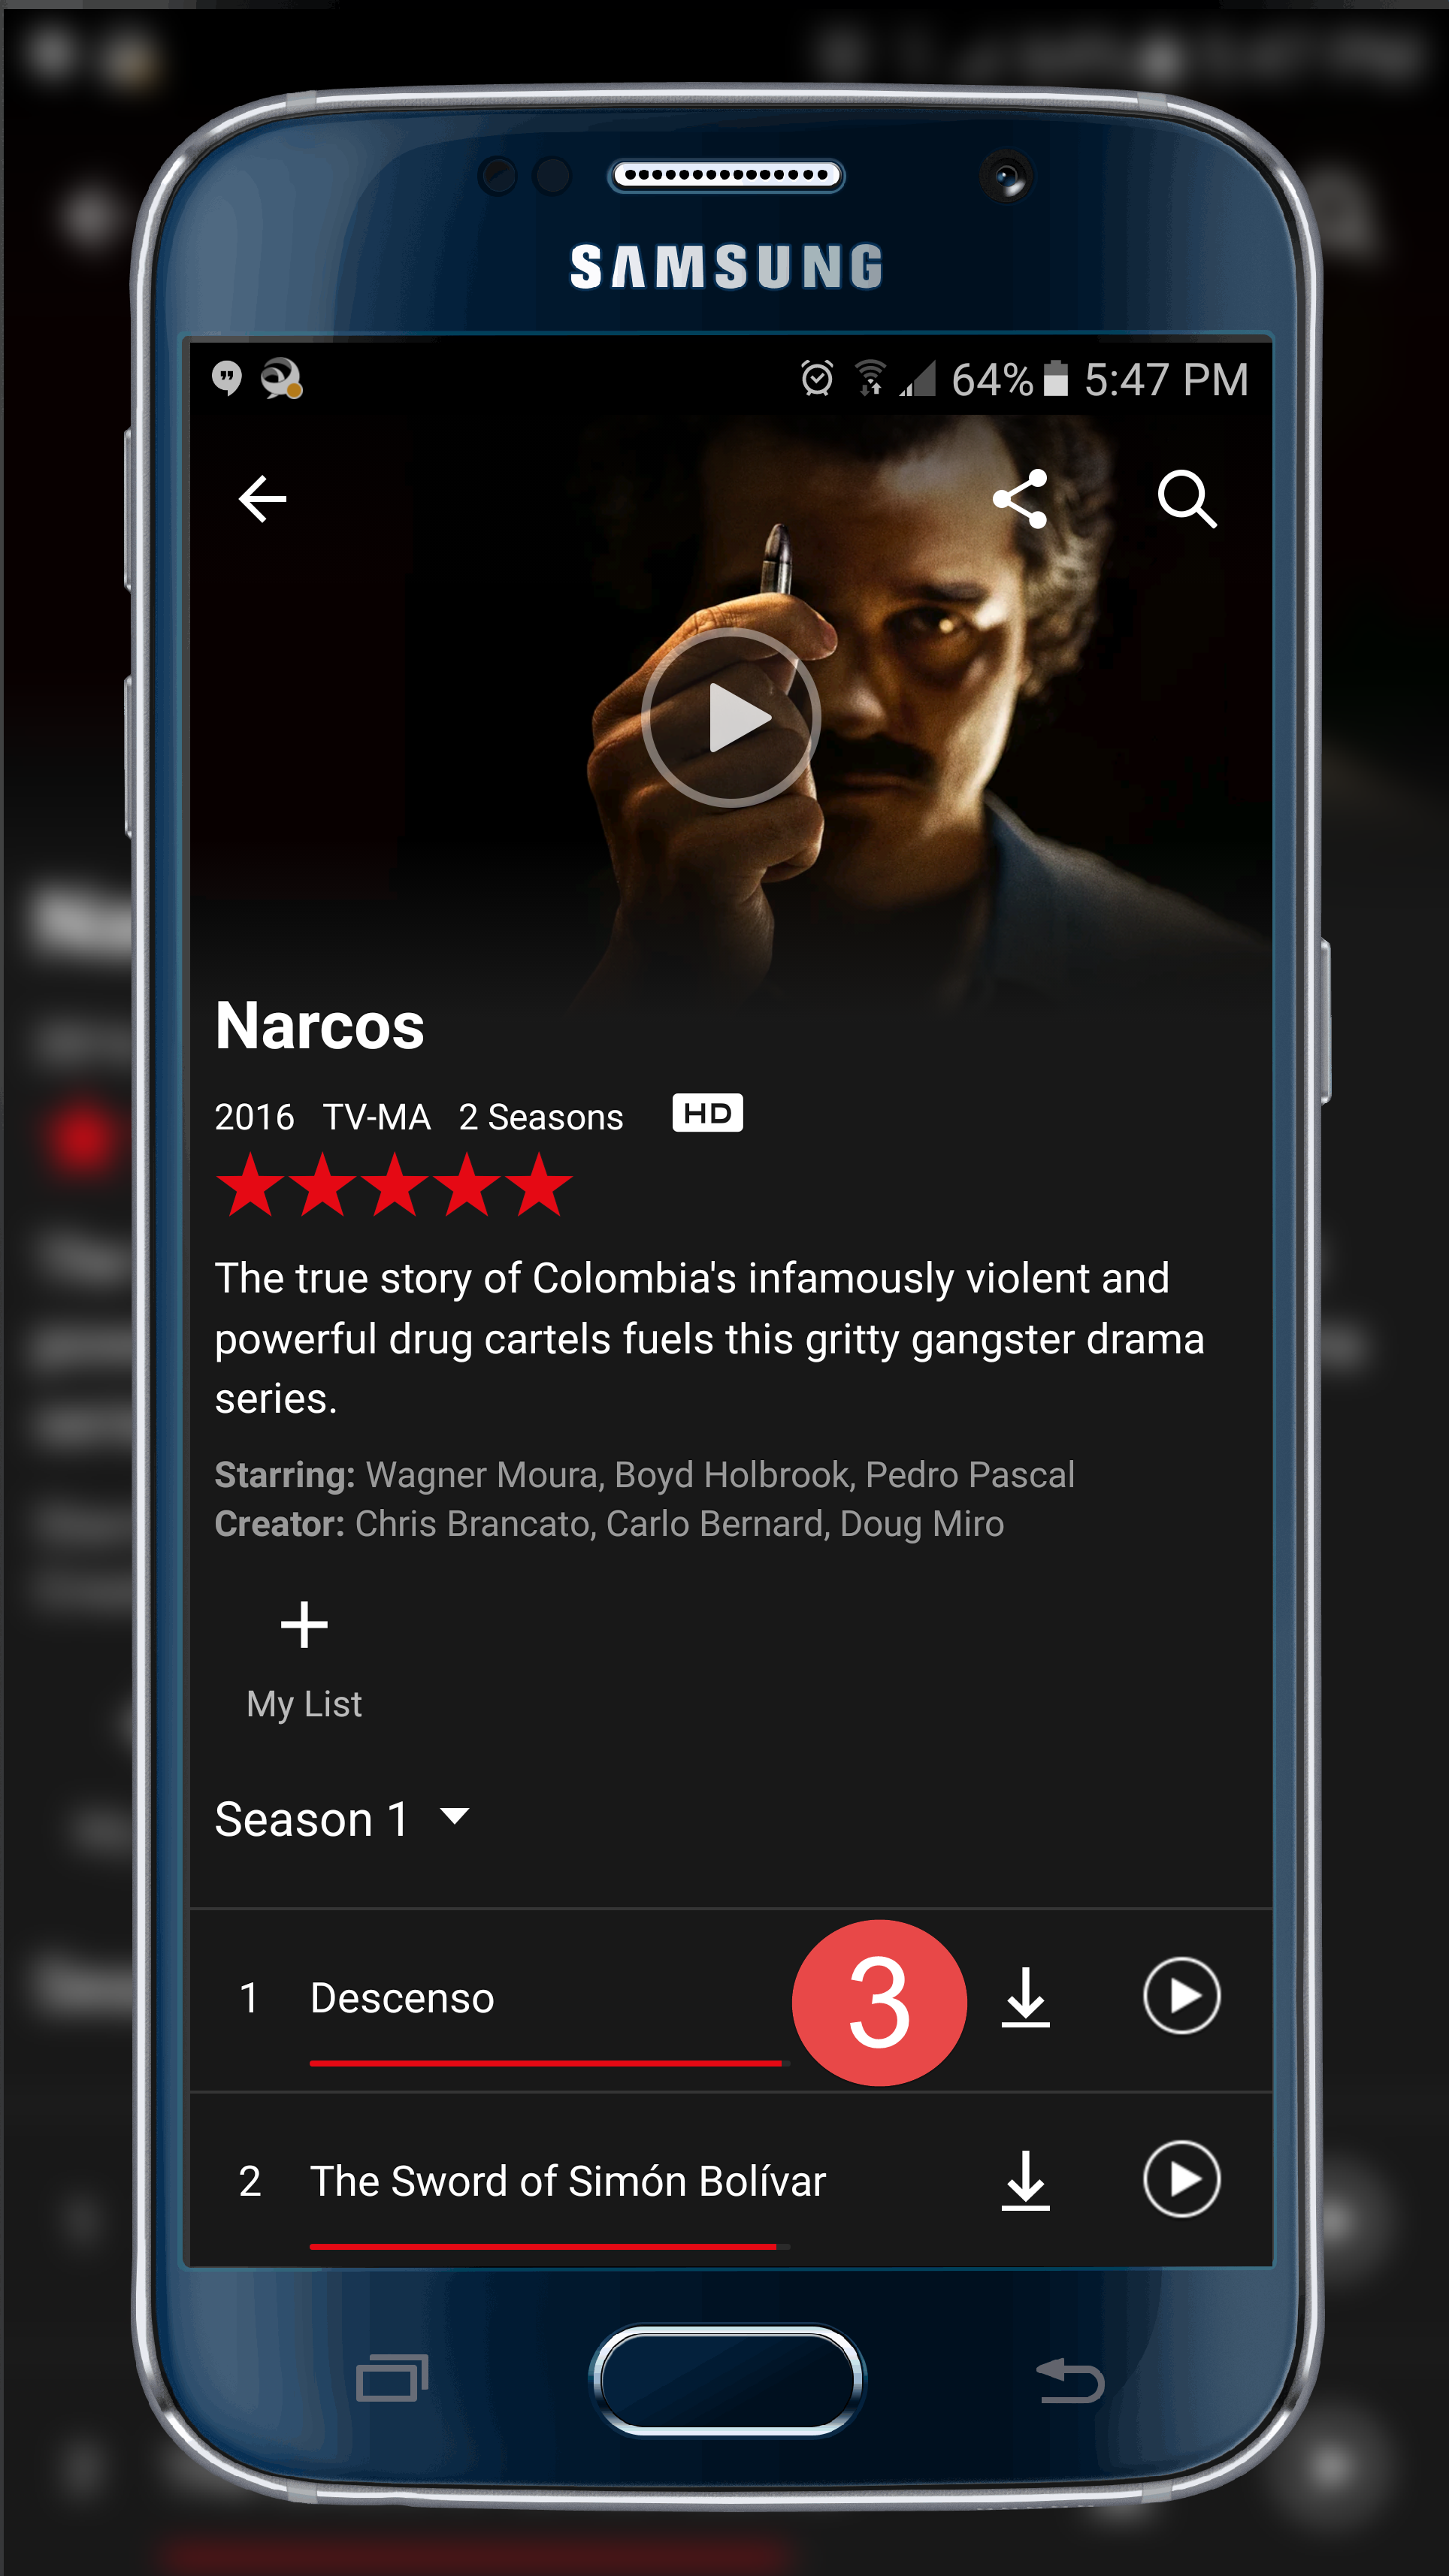 Stretch your Netflix subscription by downloading videos to